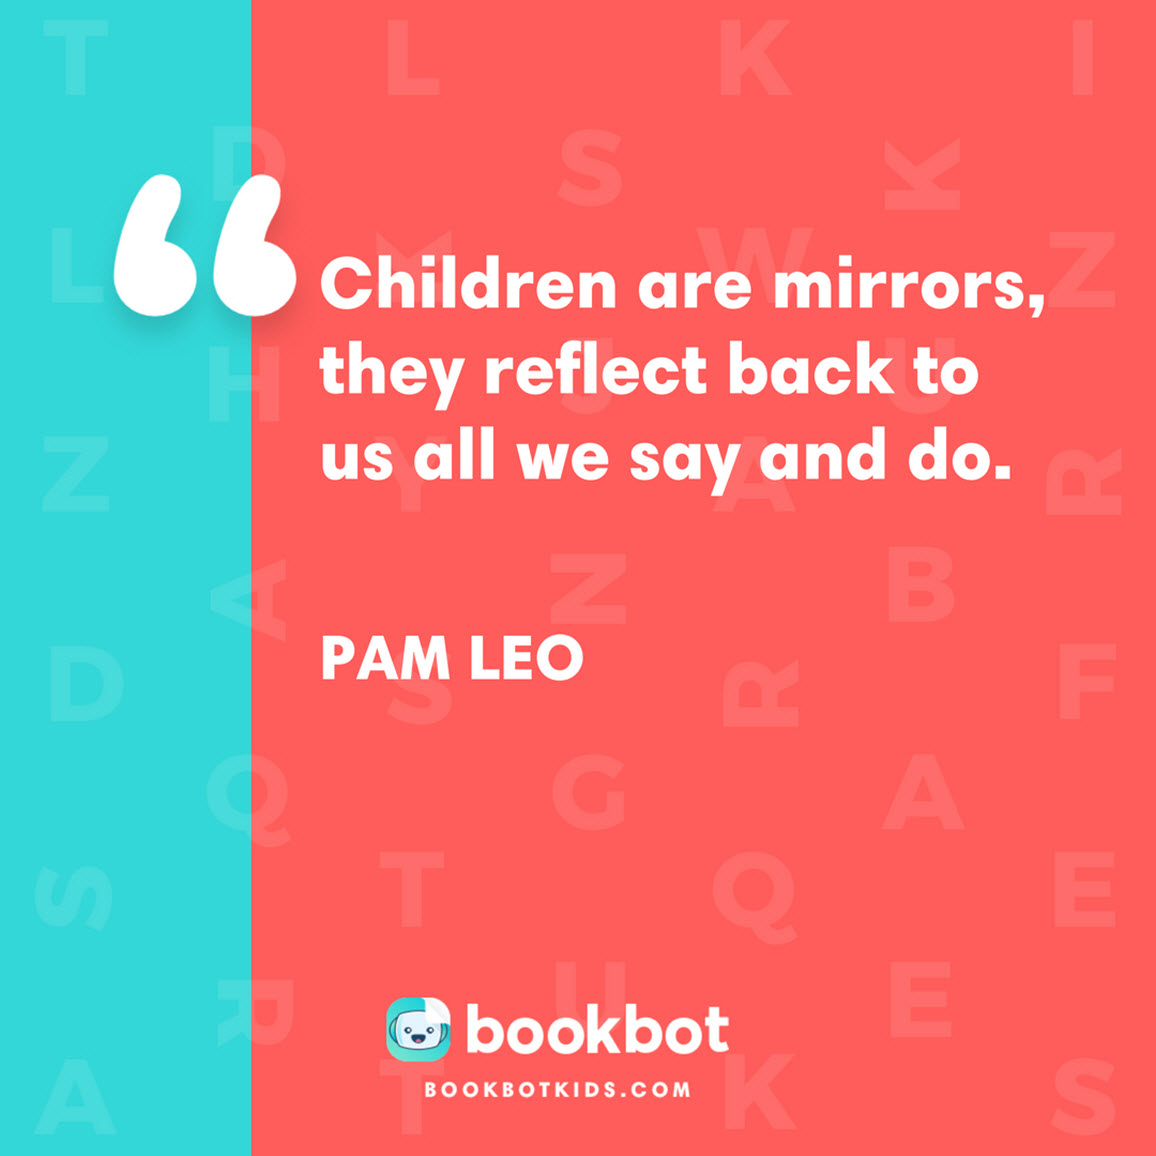 Children are mirrors, they reflect back to us all we say and do. – Pam Leo